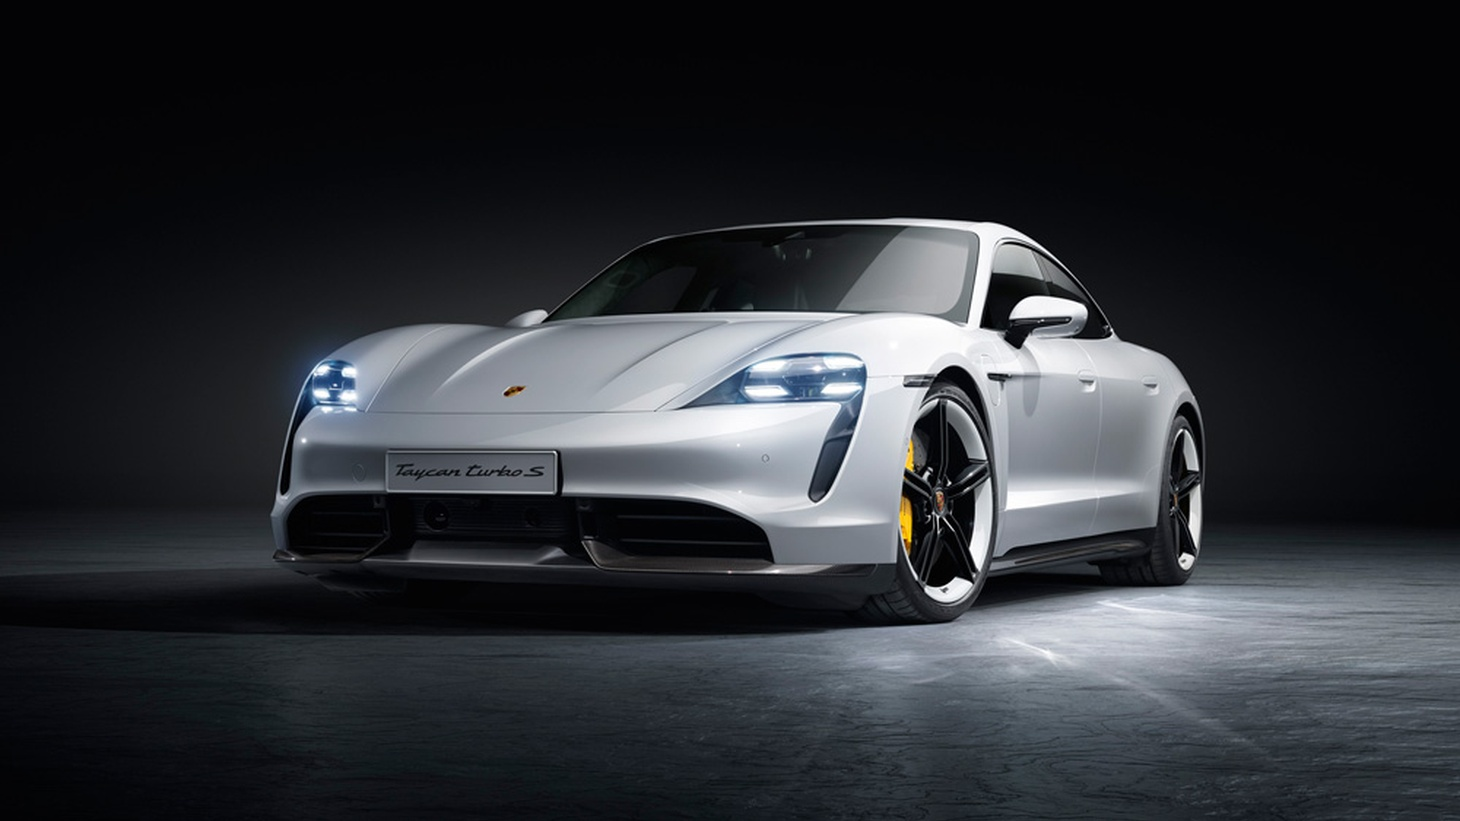 The 750 hp Taycan Turbo S can zoom from zero to 60 mph in 2.8 seconds using launch control.